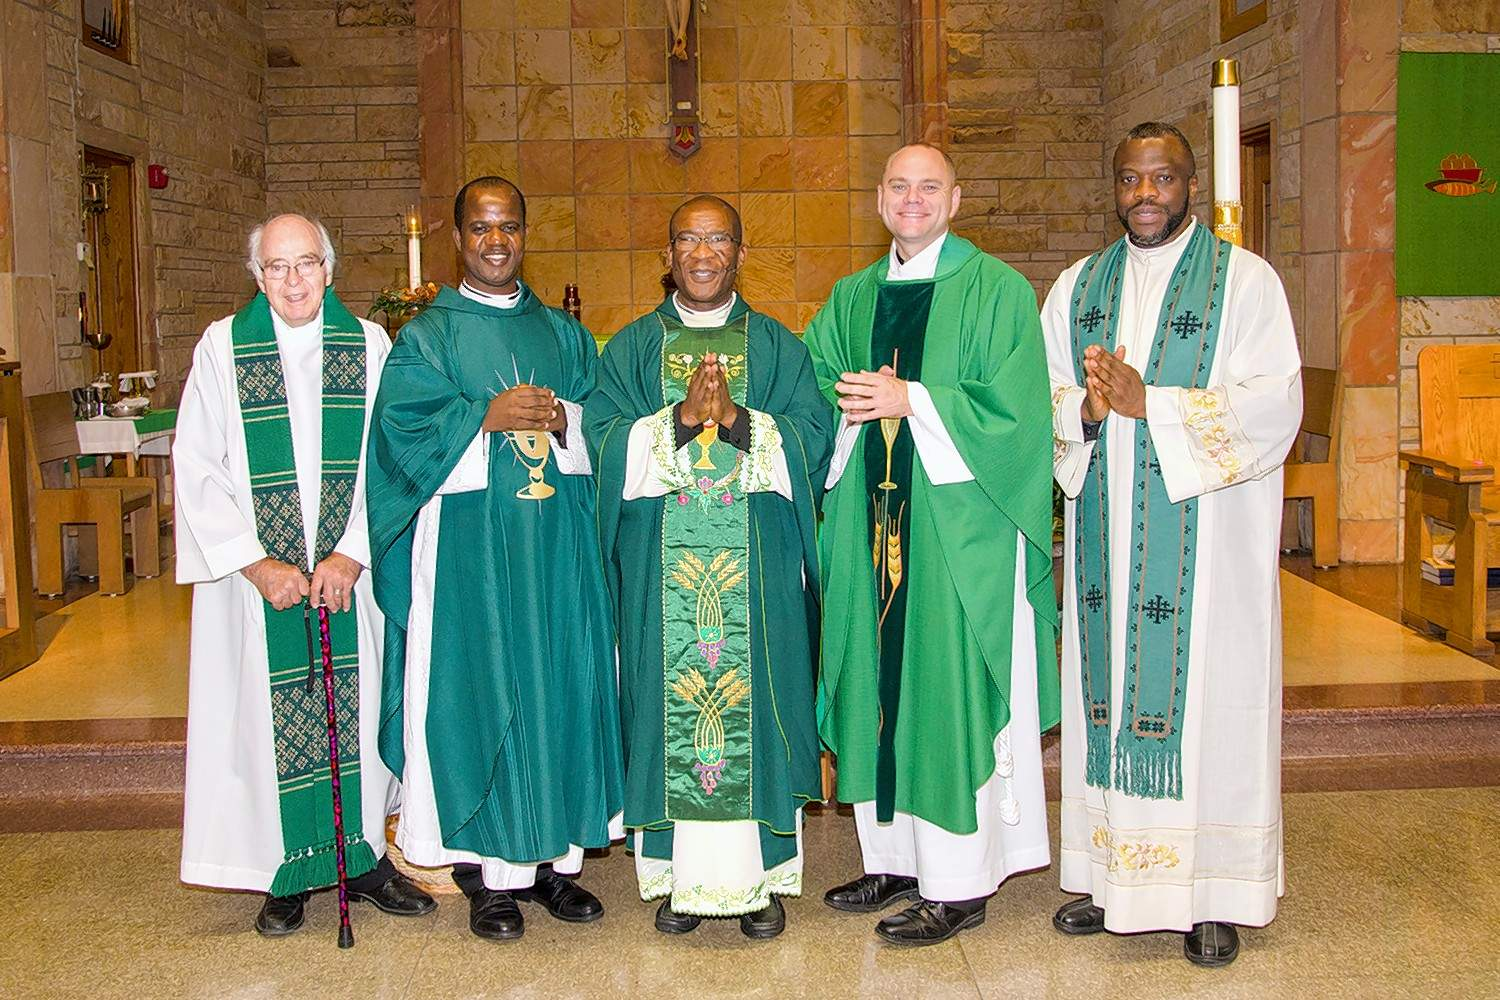 From left to right are Father Joseph Trapp, Rev. Philemon Okoh, Father Urban Osuji, C.M., the Very Rev. Steven L. Beatty, Vicar Forane, and the Rev. Osang Idagbo, C.M.